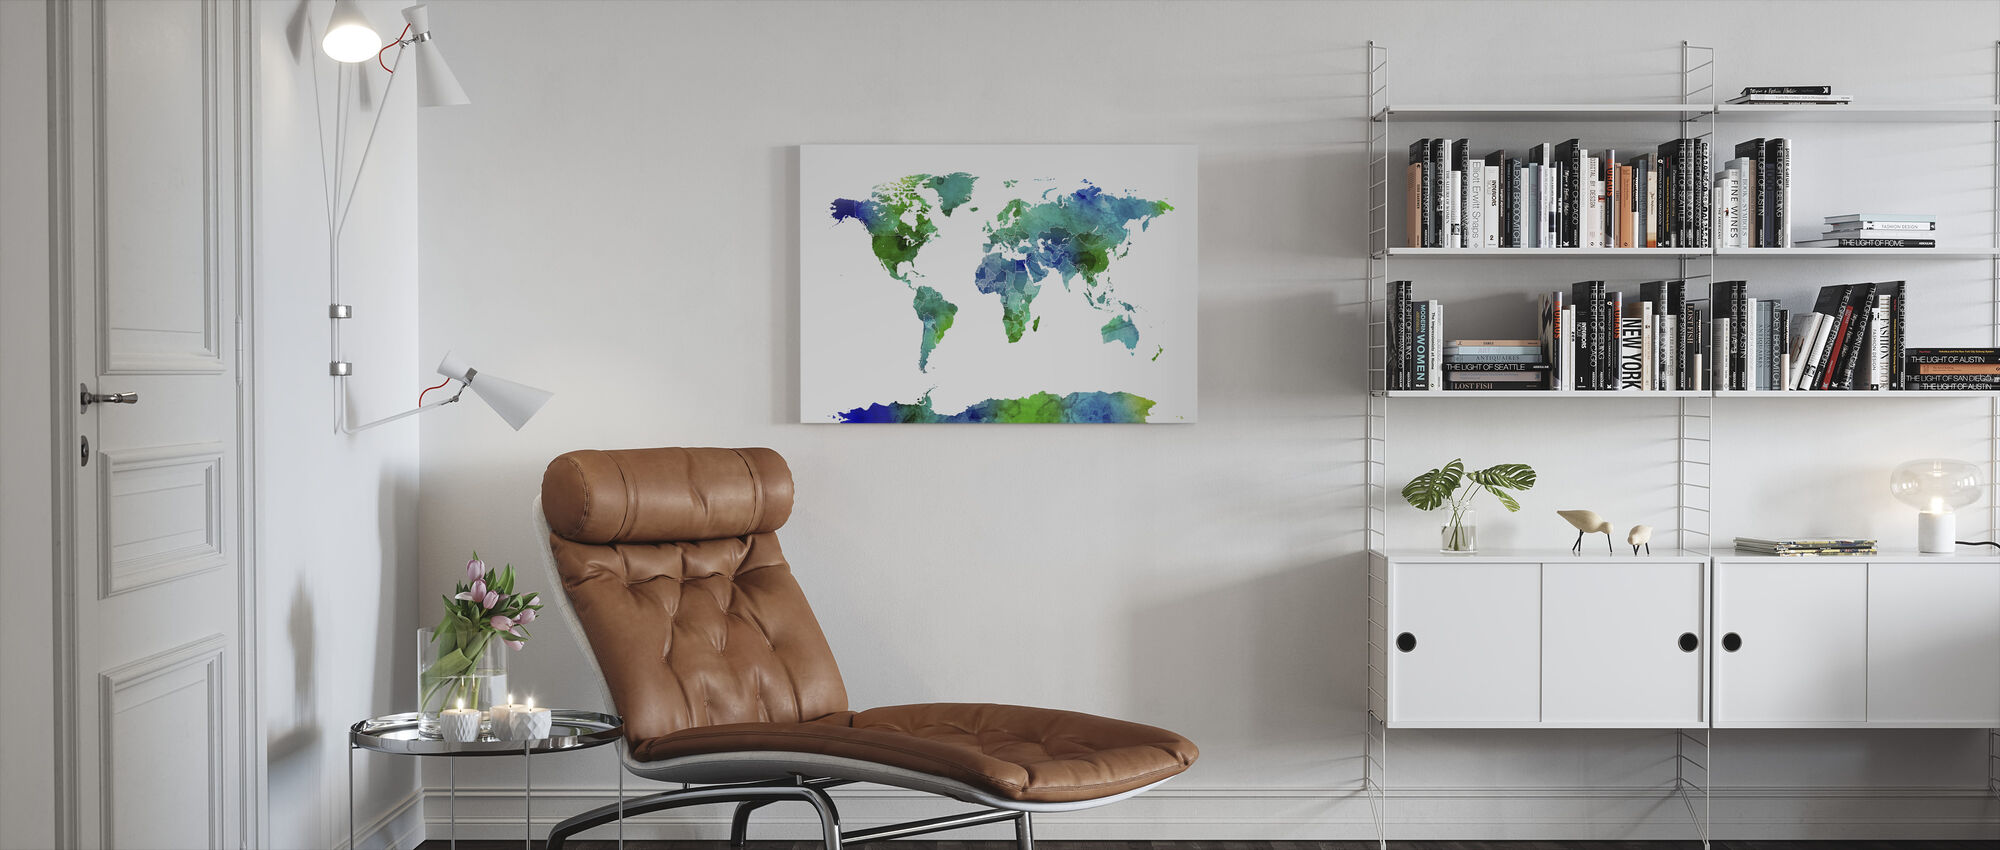 Watercolor World Map Blue & Green - Canvas print - Living Room